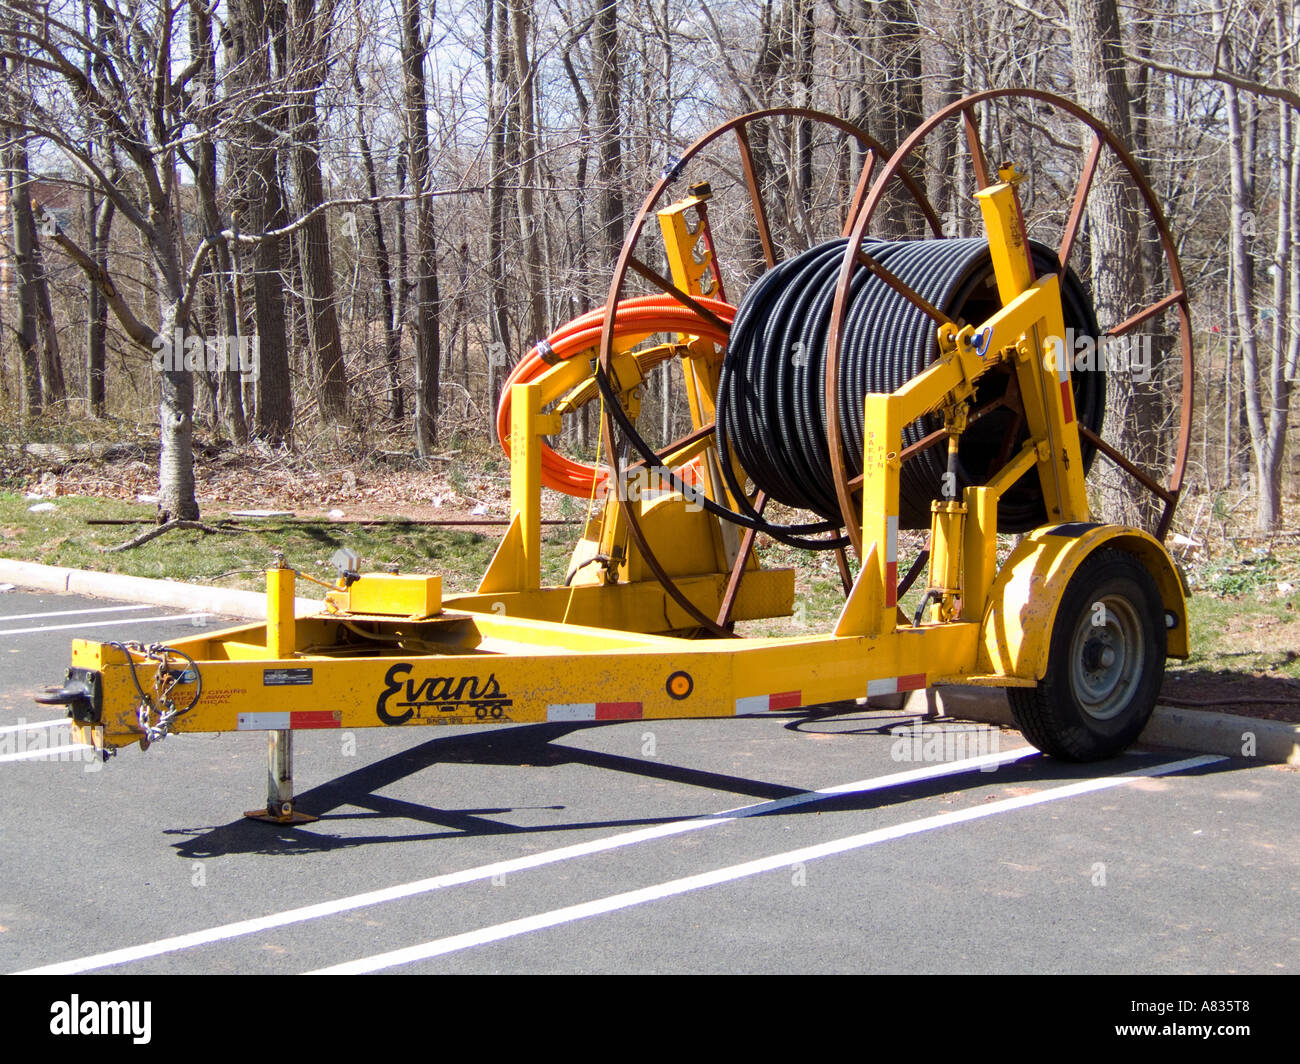 Trailer holding spool for large gauge wire Stock Photo: 6841159 - Alamy